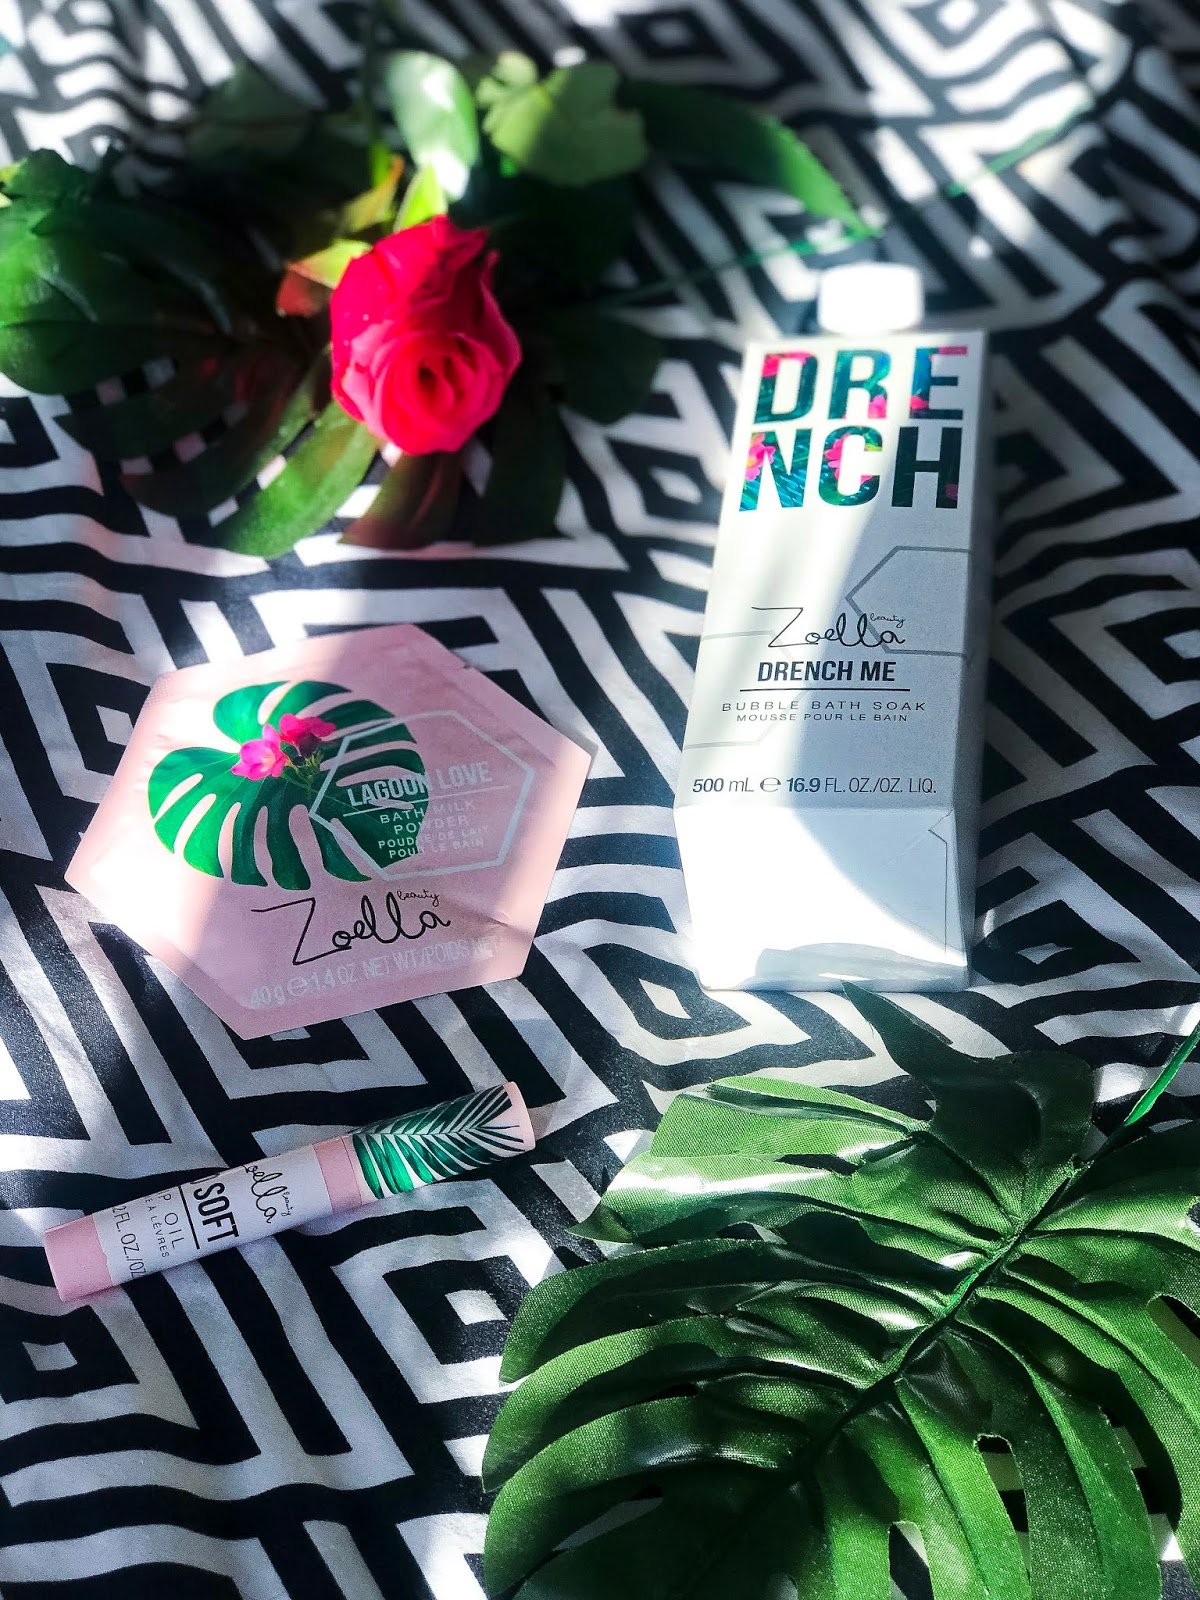 zoella beauty splash botanics review lip oil drench lagoon love